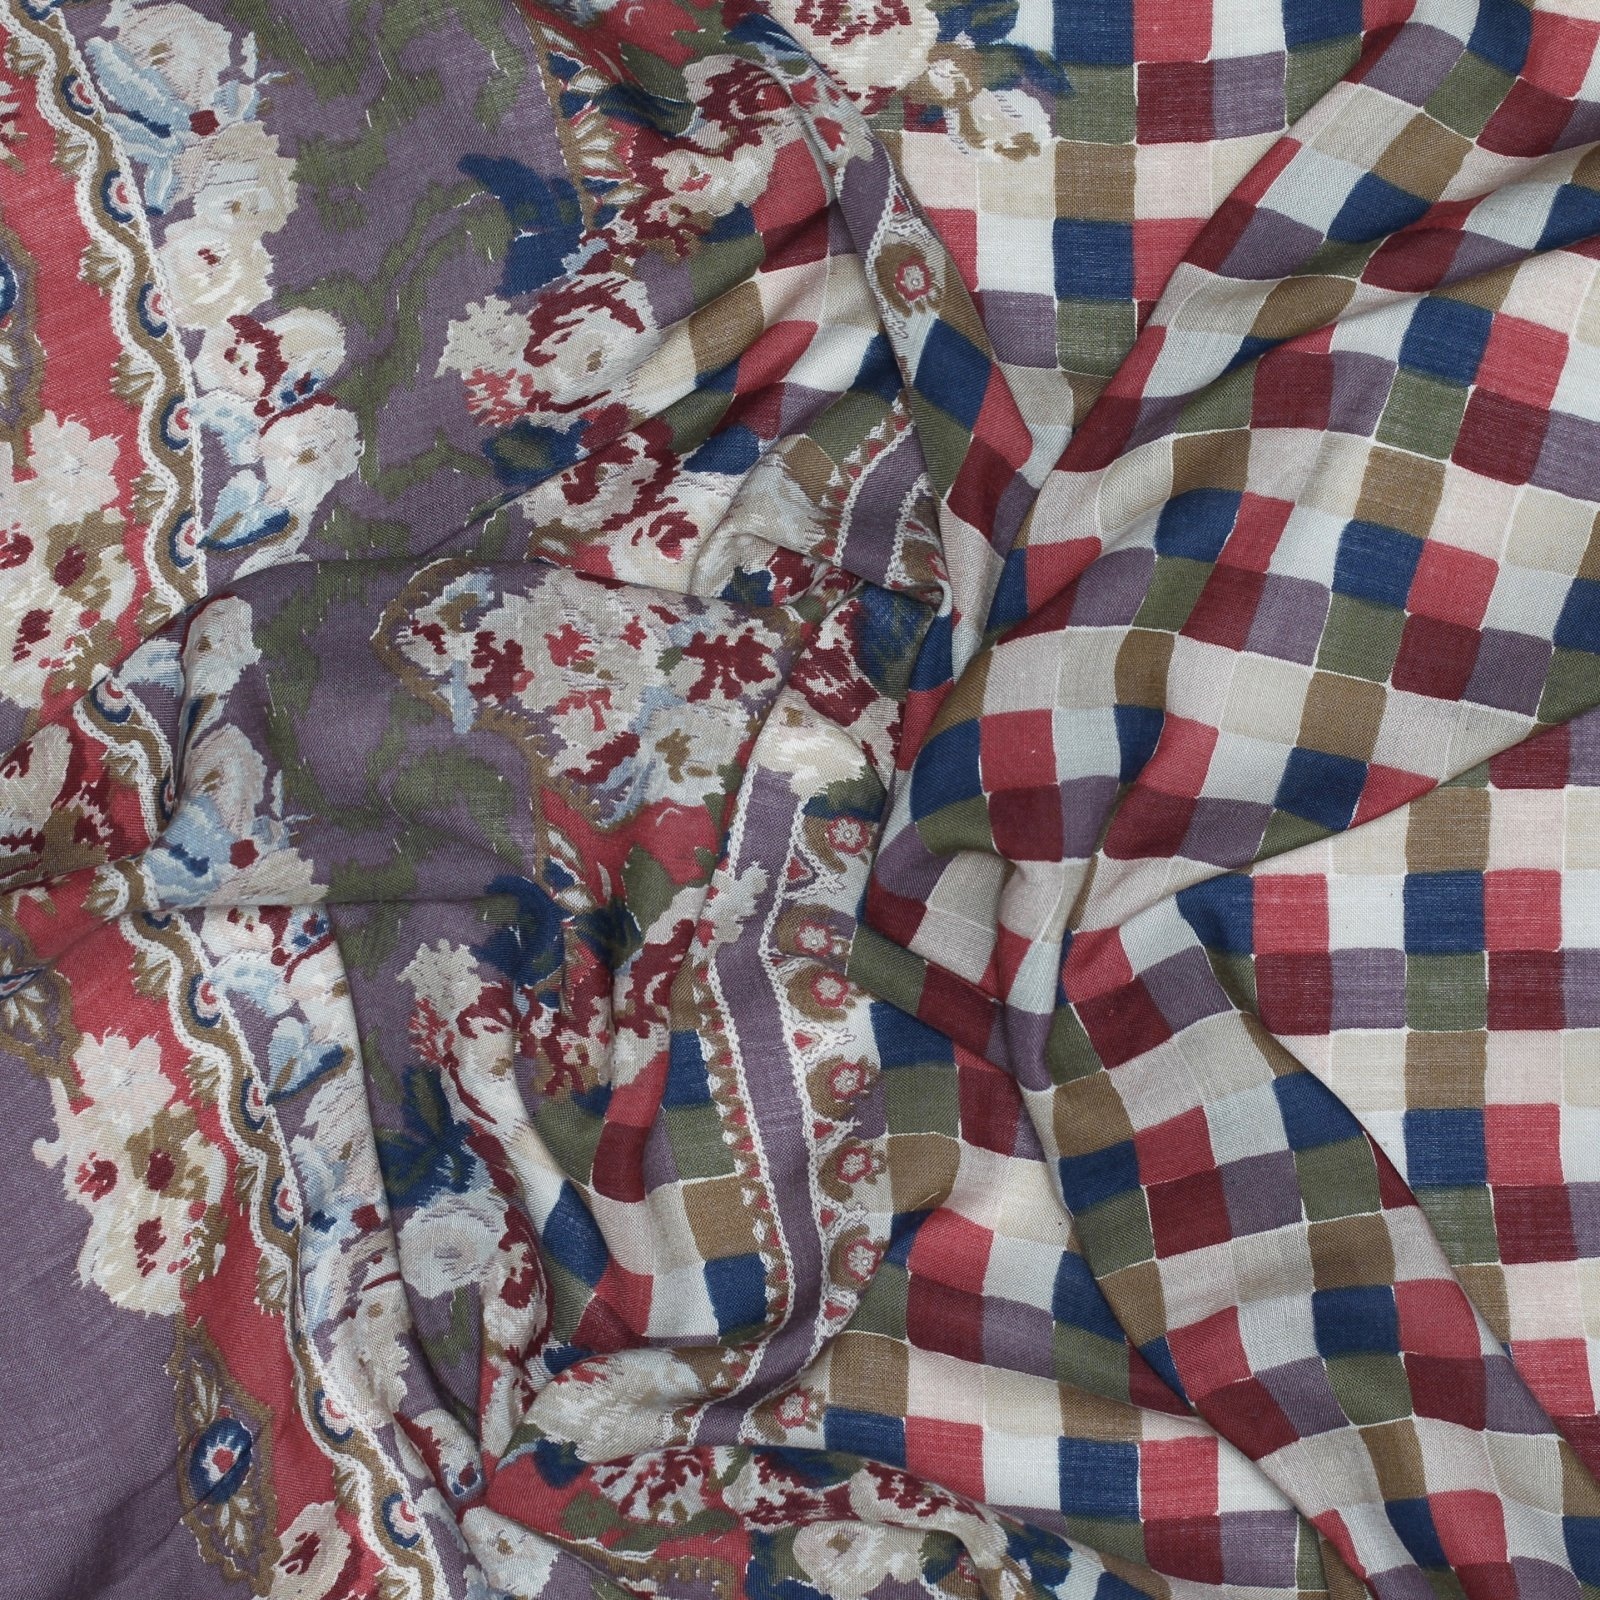 Wool/Cotton Voile Checkered Border Print